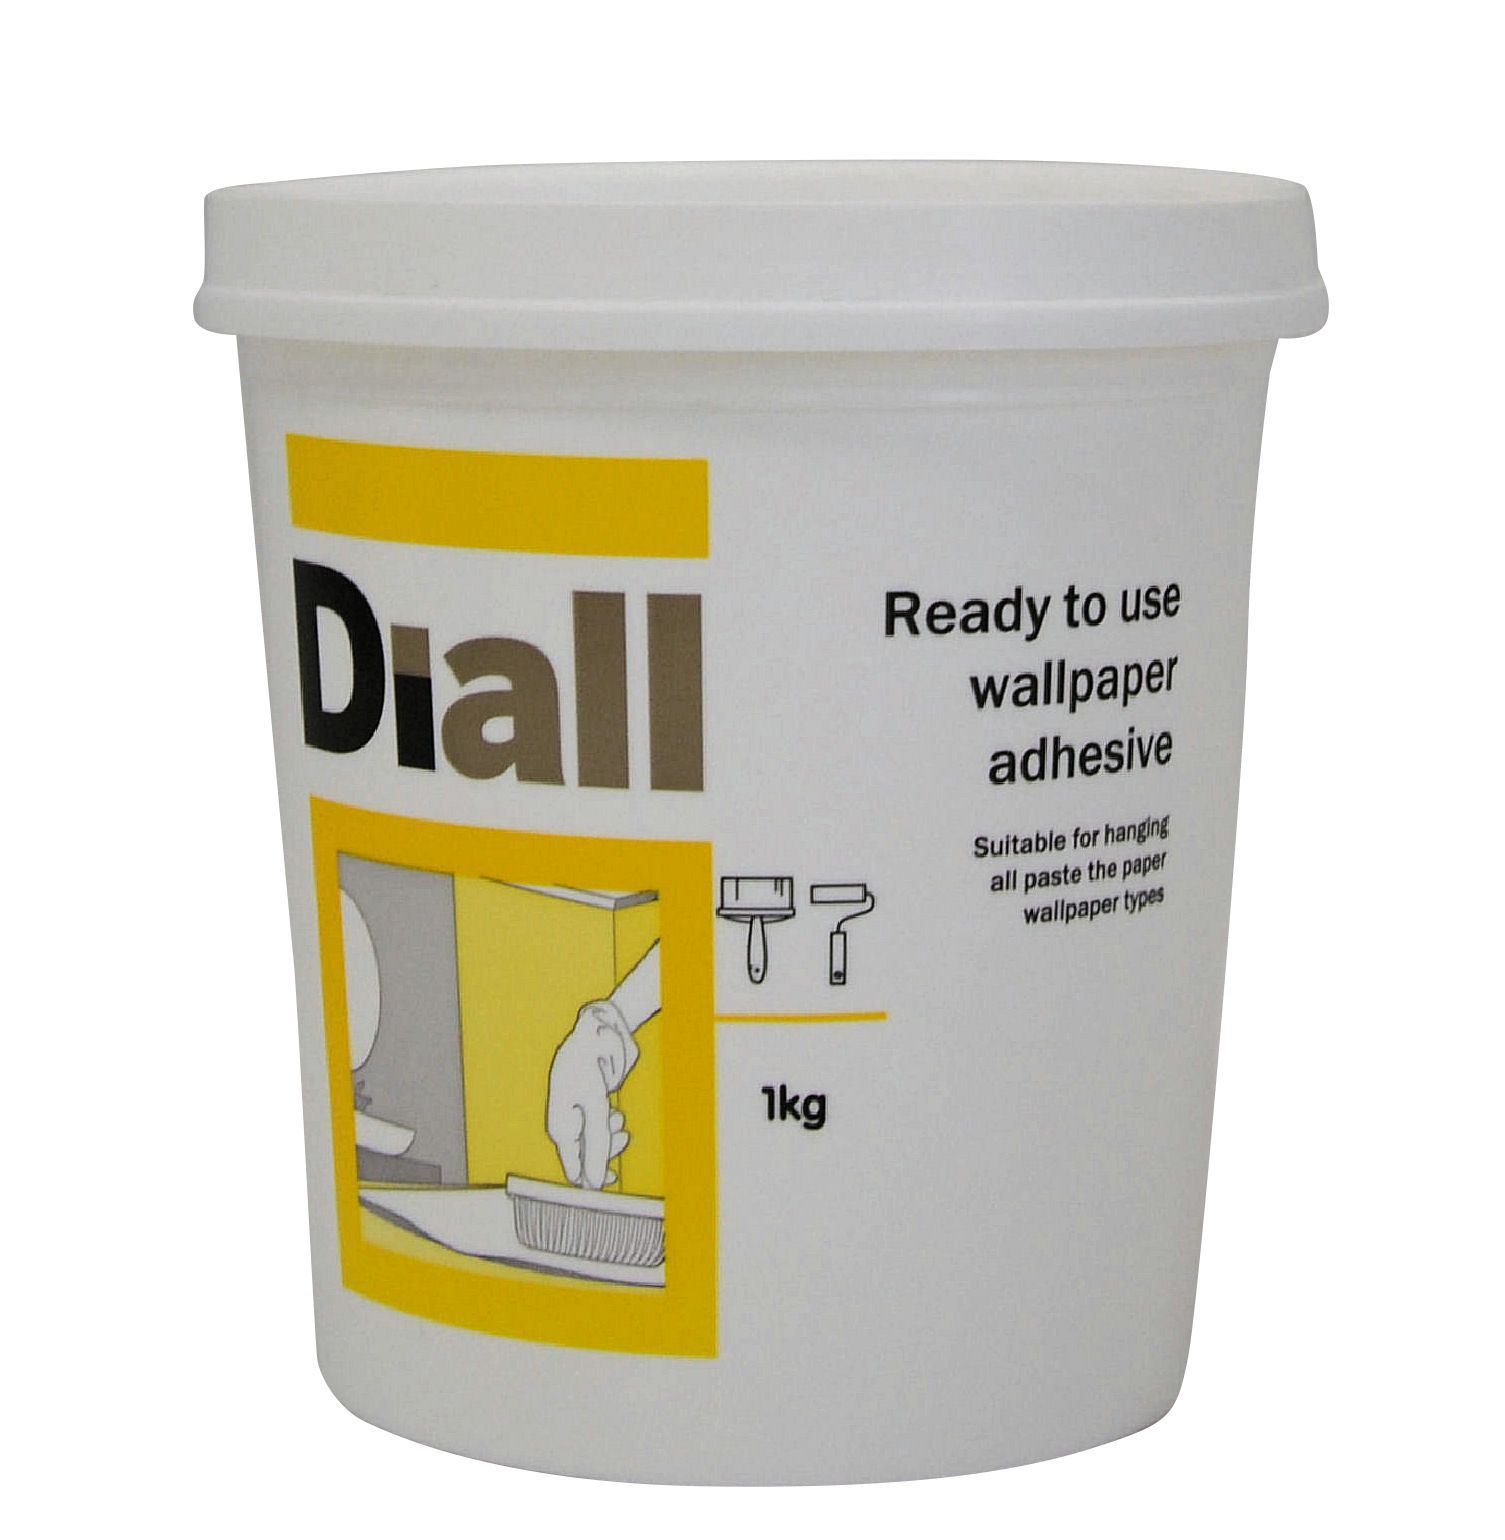 BQ All Purpose Ready To Use Wallpaper Adhesive 1kg